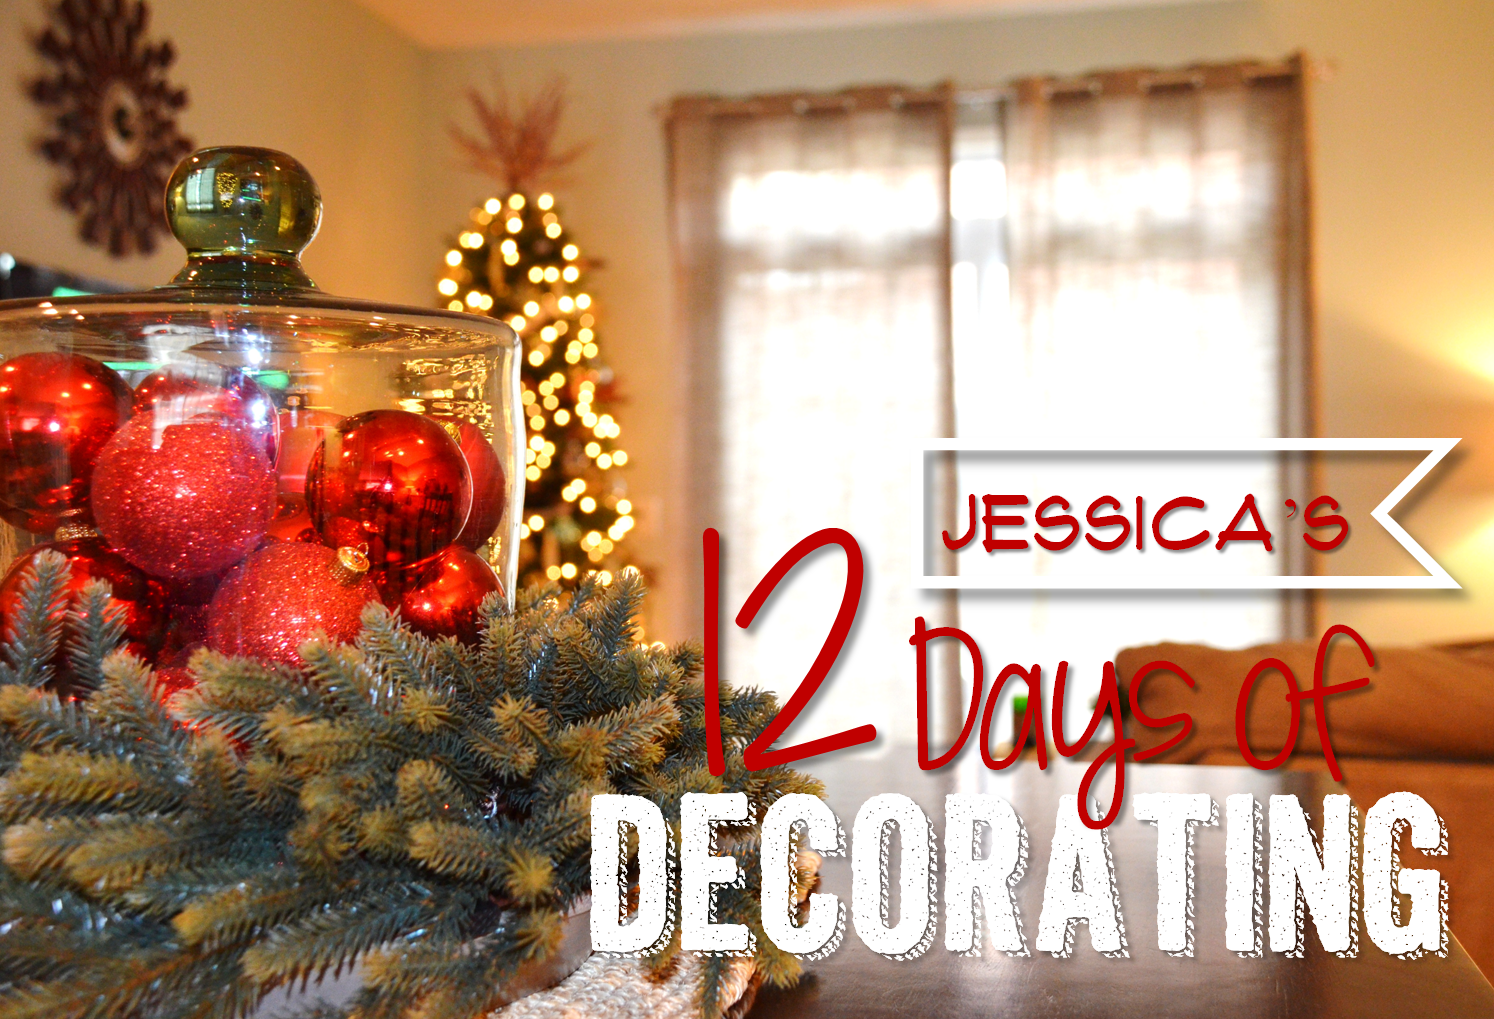 follow along with me the next 12 days of christmas for holiday inspiration decorating tips and an inside look at an interior designers home for the - 12 Days Of Christmas Decorations